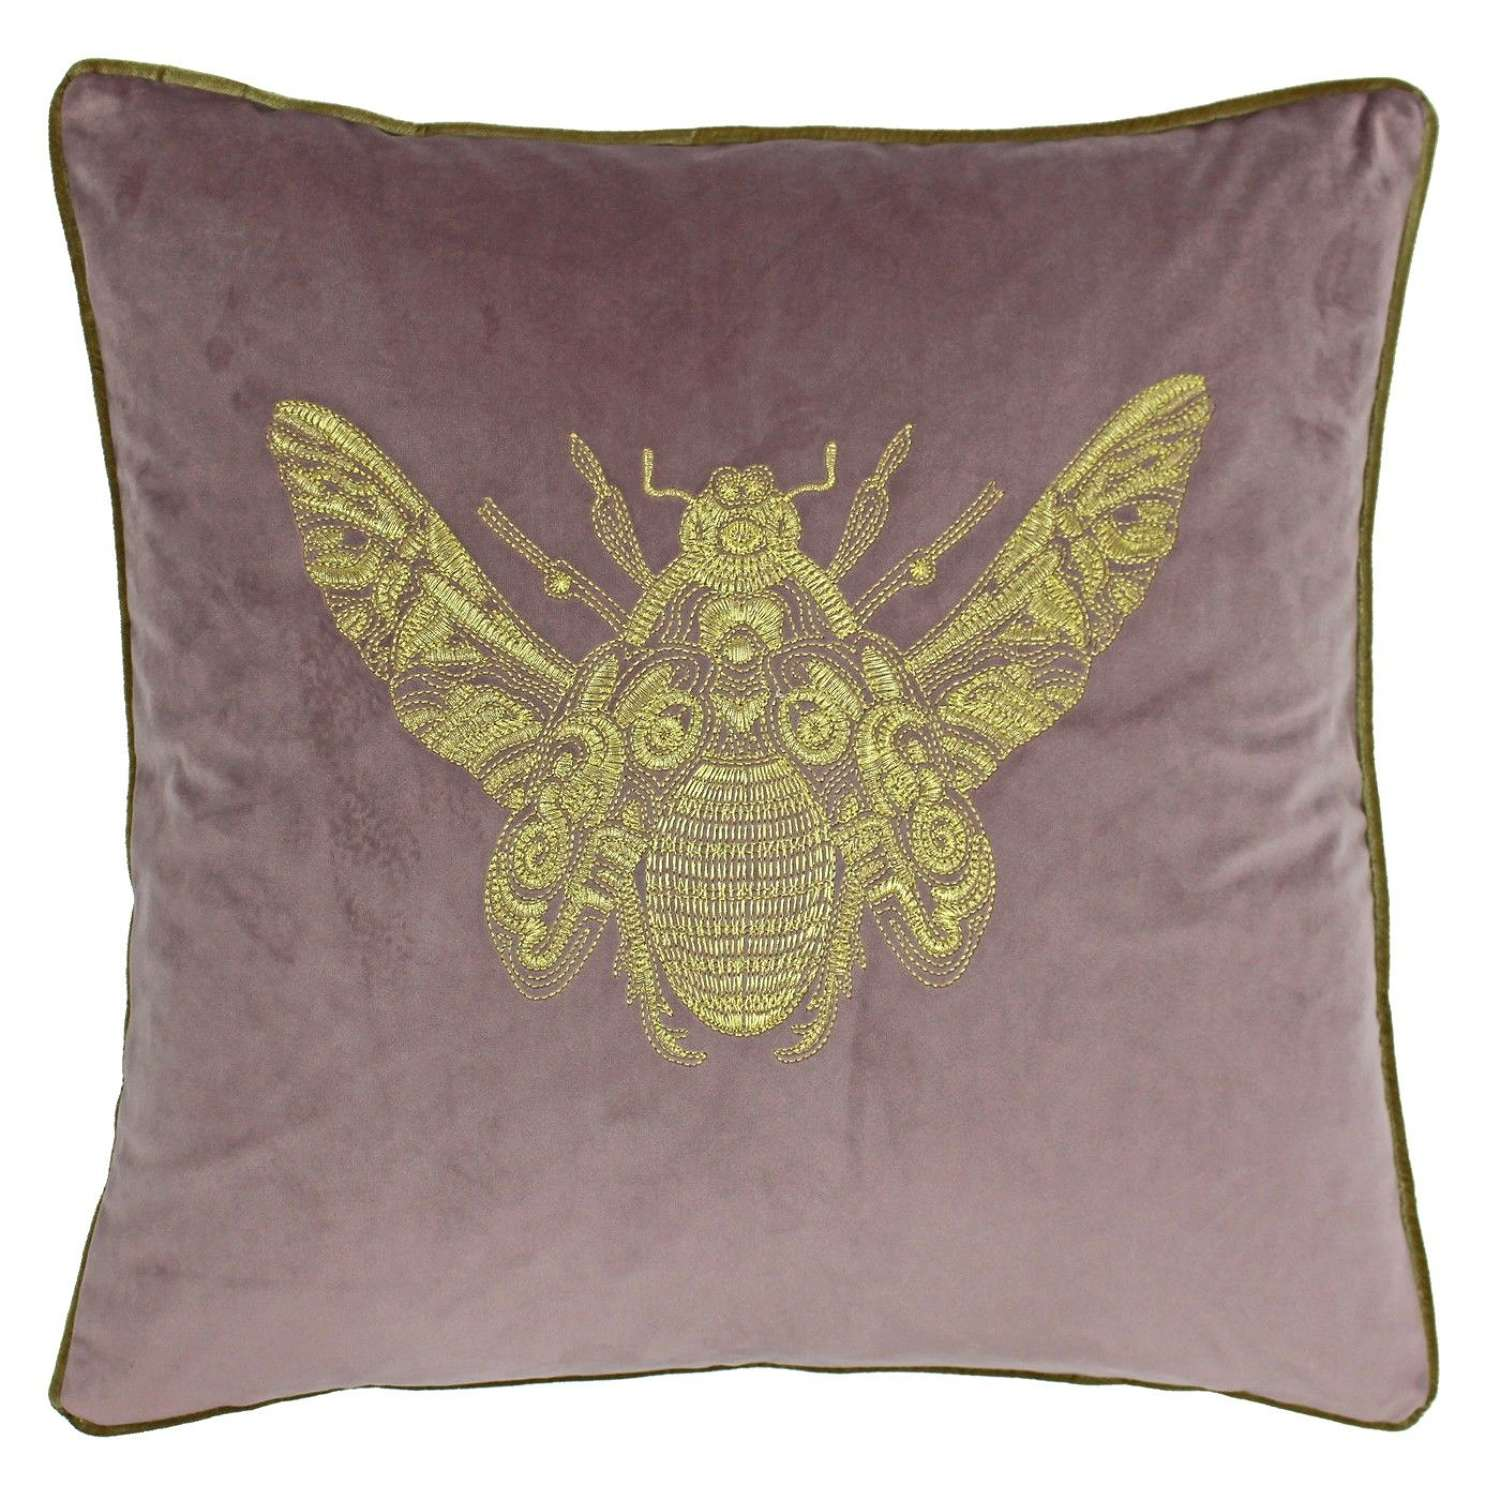 Velvet Piped Cushion with Embroidered Bee - Blush